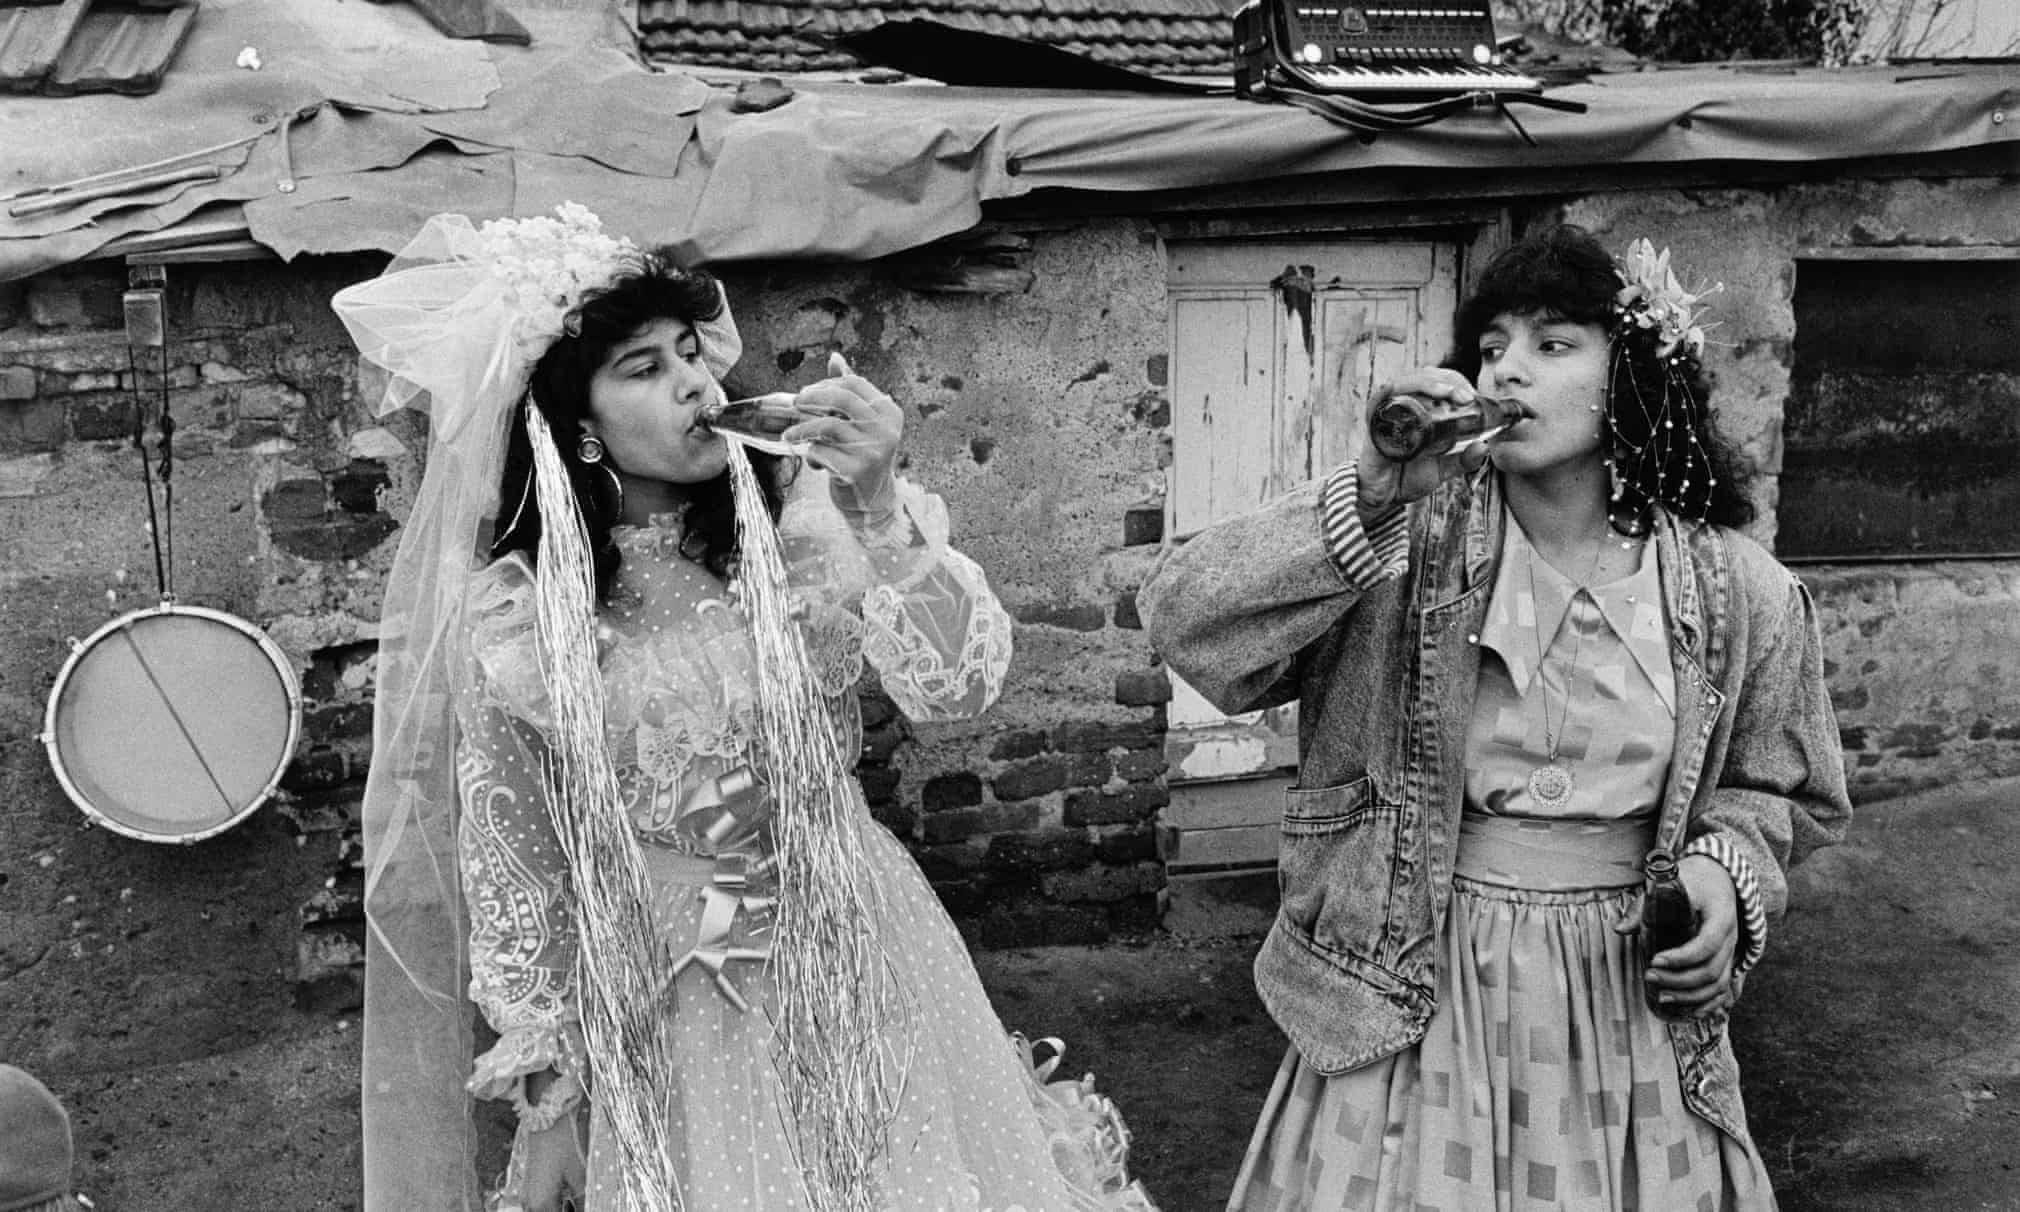 The bride and bridesmaid during a wedding celebrations in Fakulteta, a Gypsy district of Sofia, Bulgaria, 1991See more on this picture - link Sunday 17th big pic piece https://www.theguardian.com/theobserver/series/the-big-picture